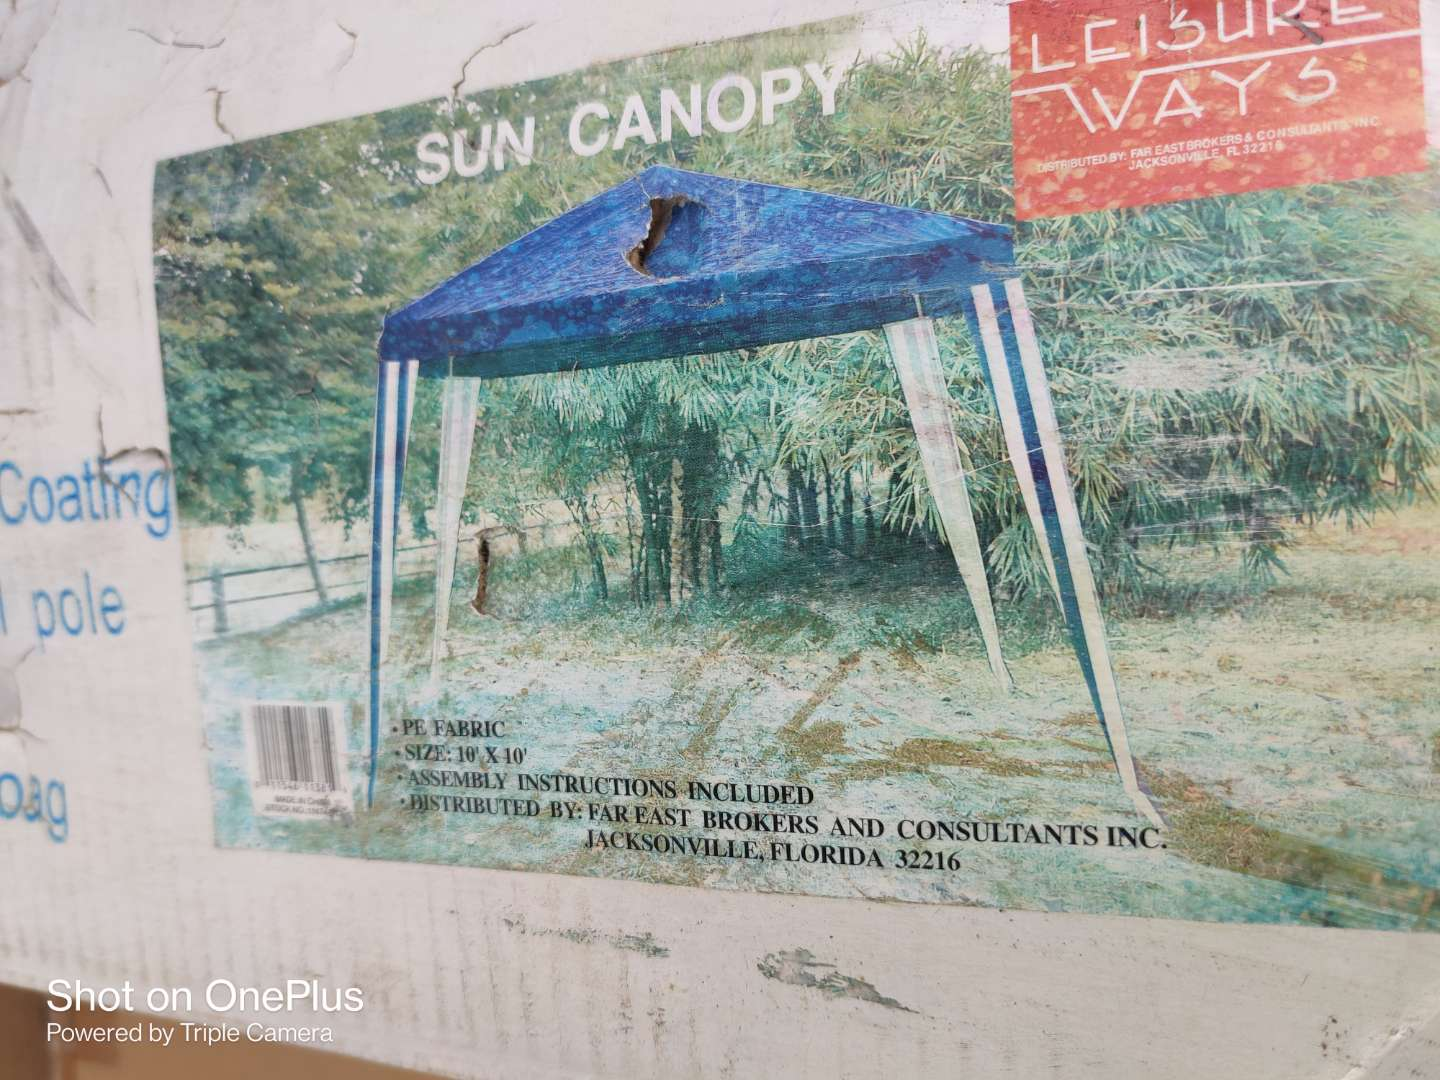 510 son 10x10 ft canopy in box